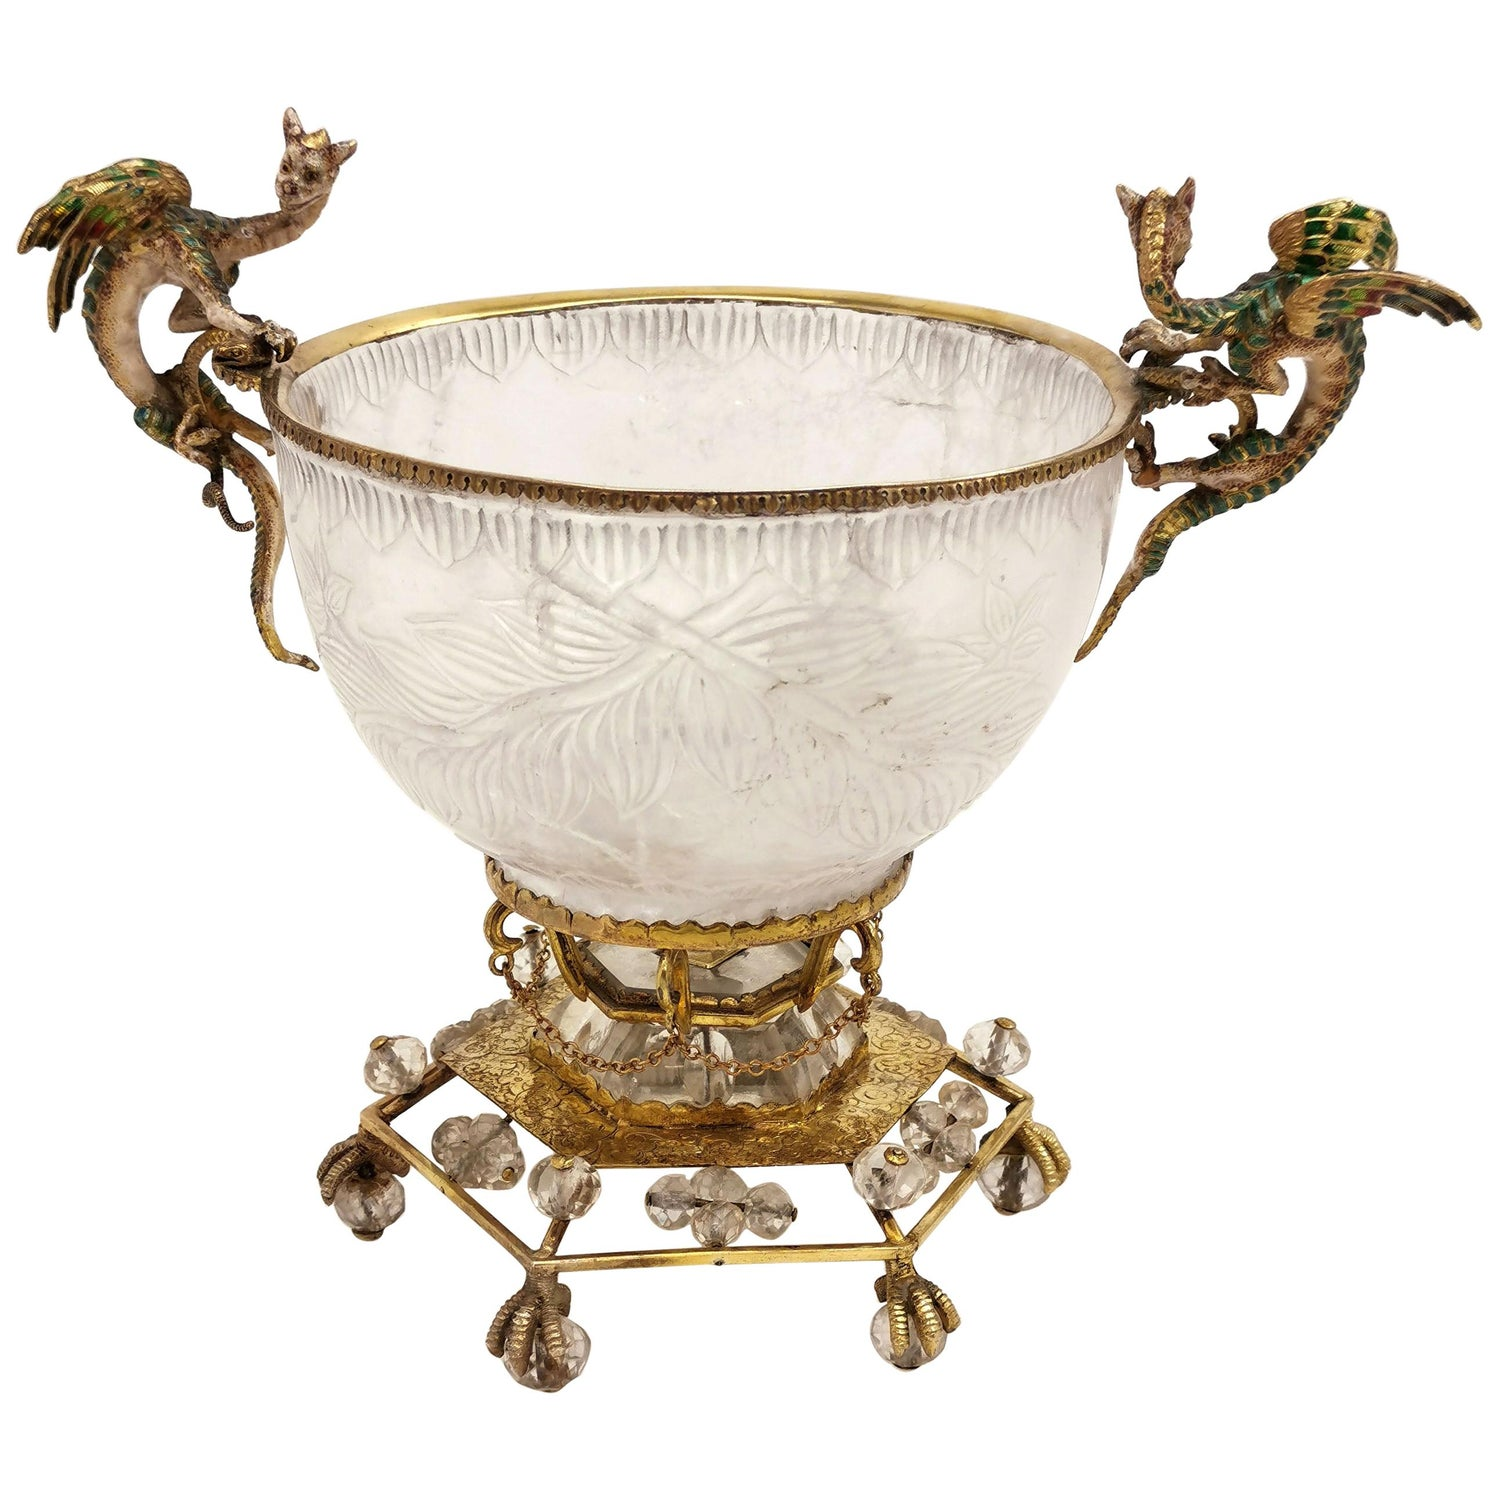 Austrian Silver Gilt, Rock Crystal and Enamel Comport Bowl, circa 1890